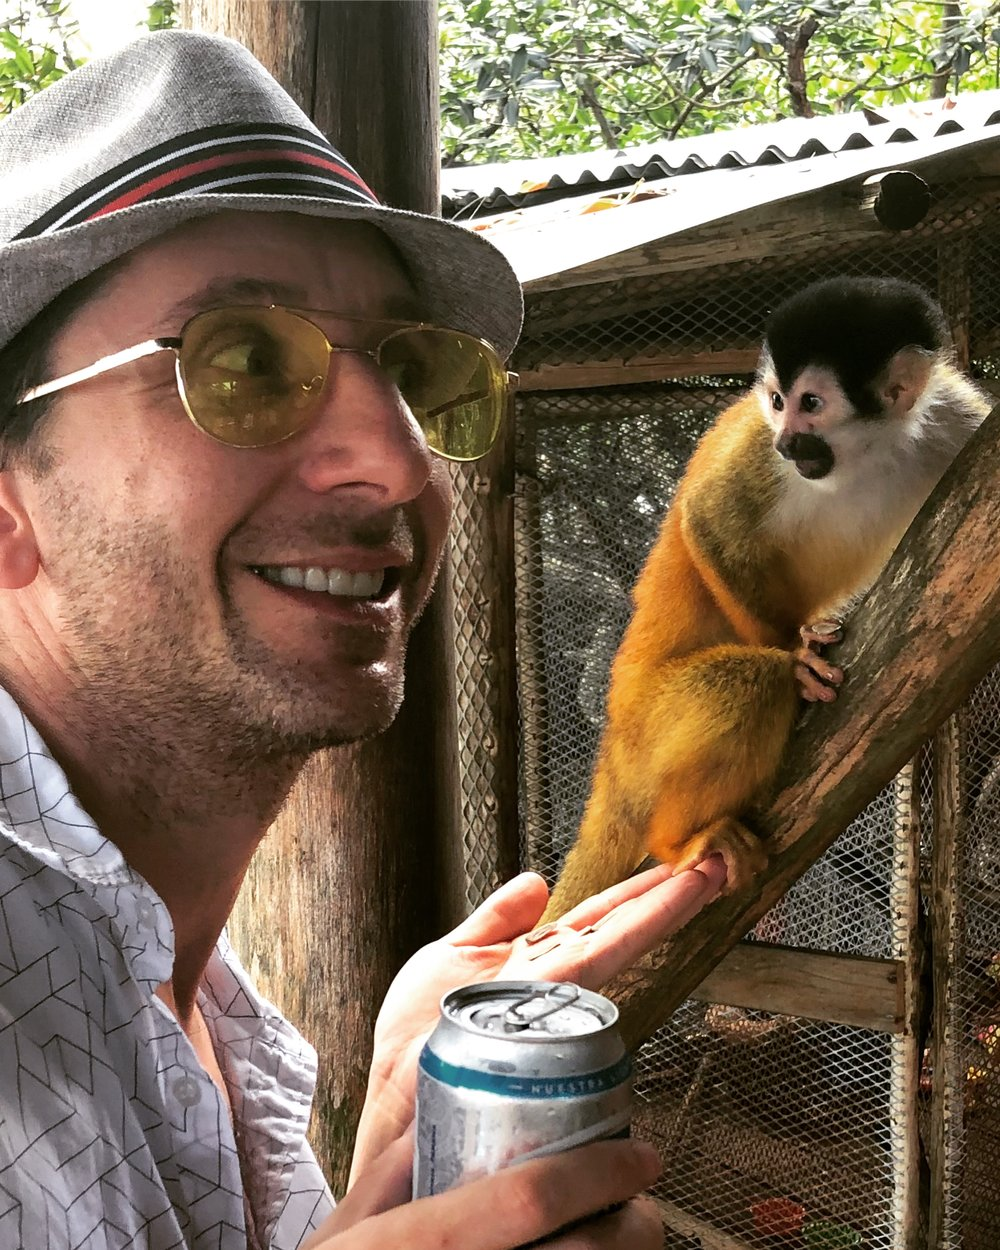 A squirrel monkey at the Monkey Island Foundation in Bocas del Toro Panama questions my intentions.